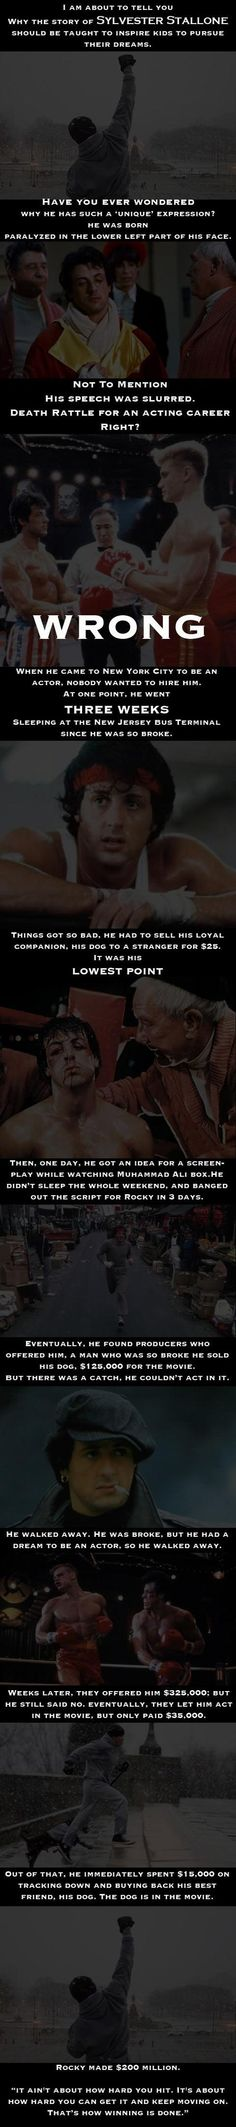 Sylvester Stallone's story should be told to everyone ever…. - One stop humour